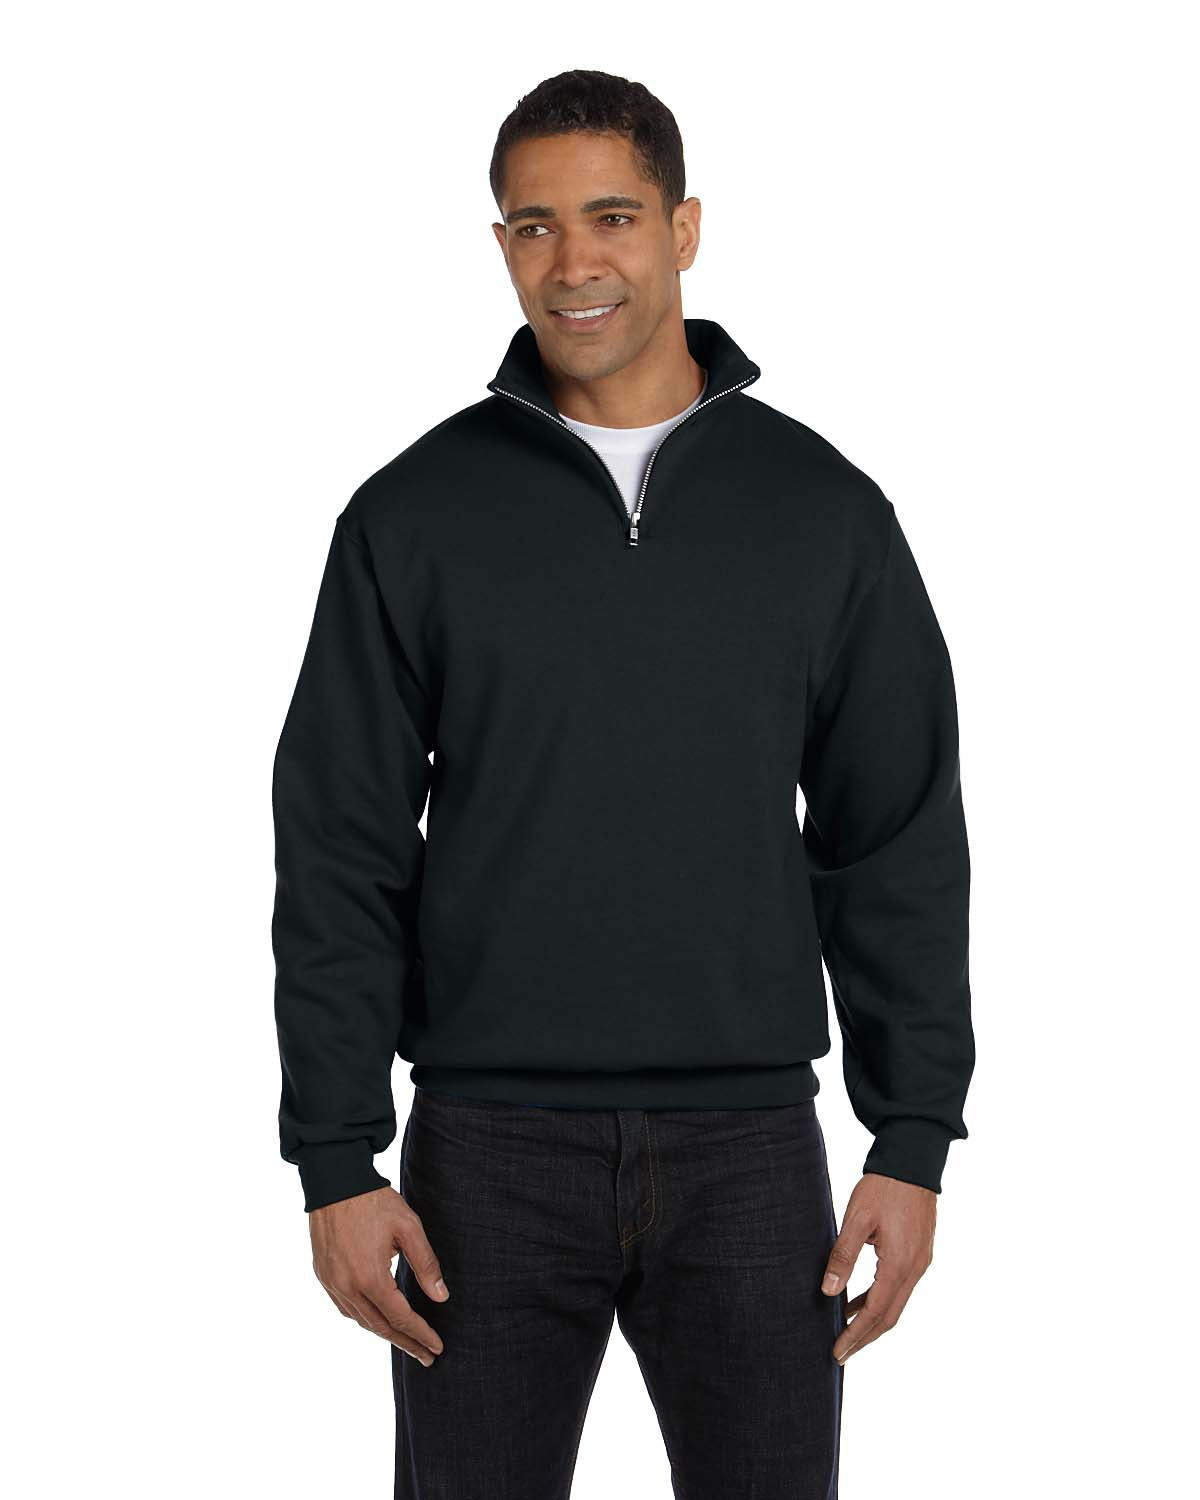 JERZEES - 8 Ounce 50/50 Cadet Collar Sweatshirt